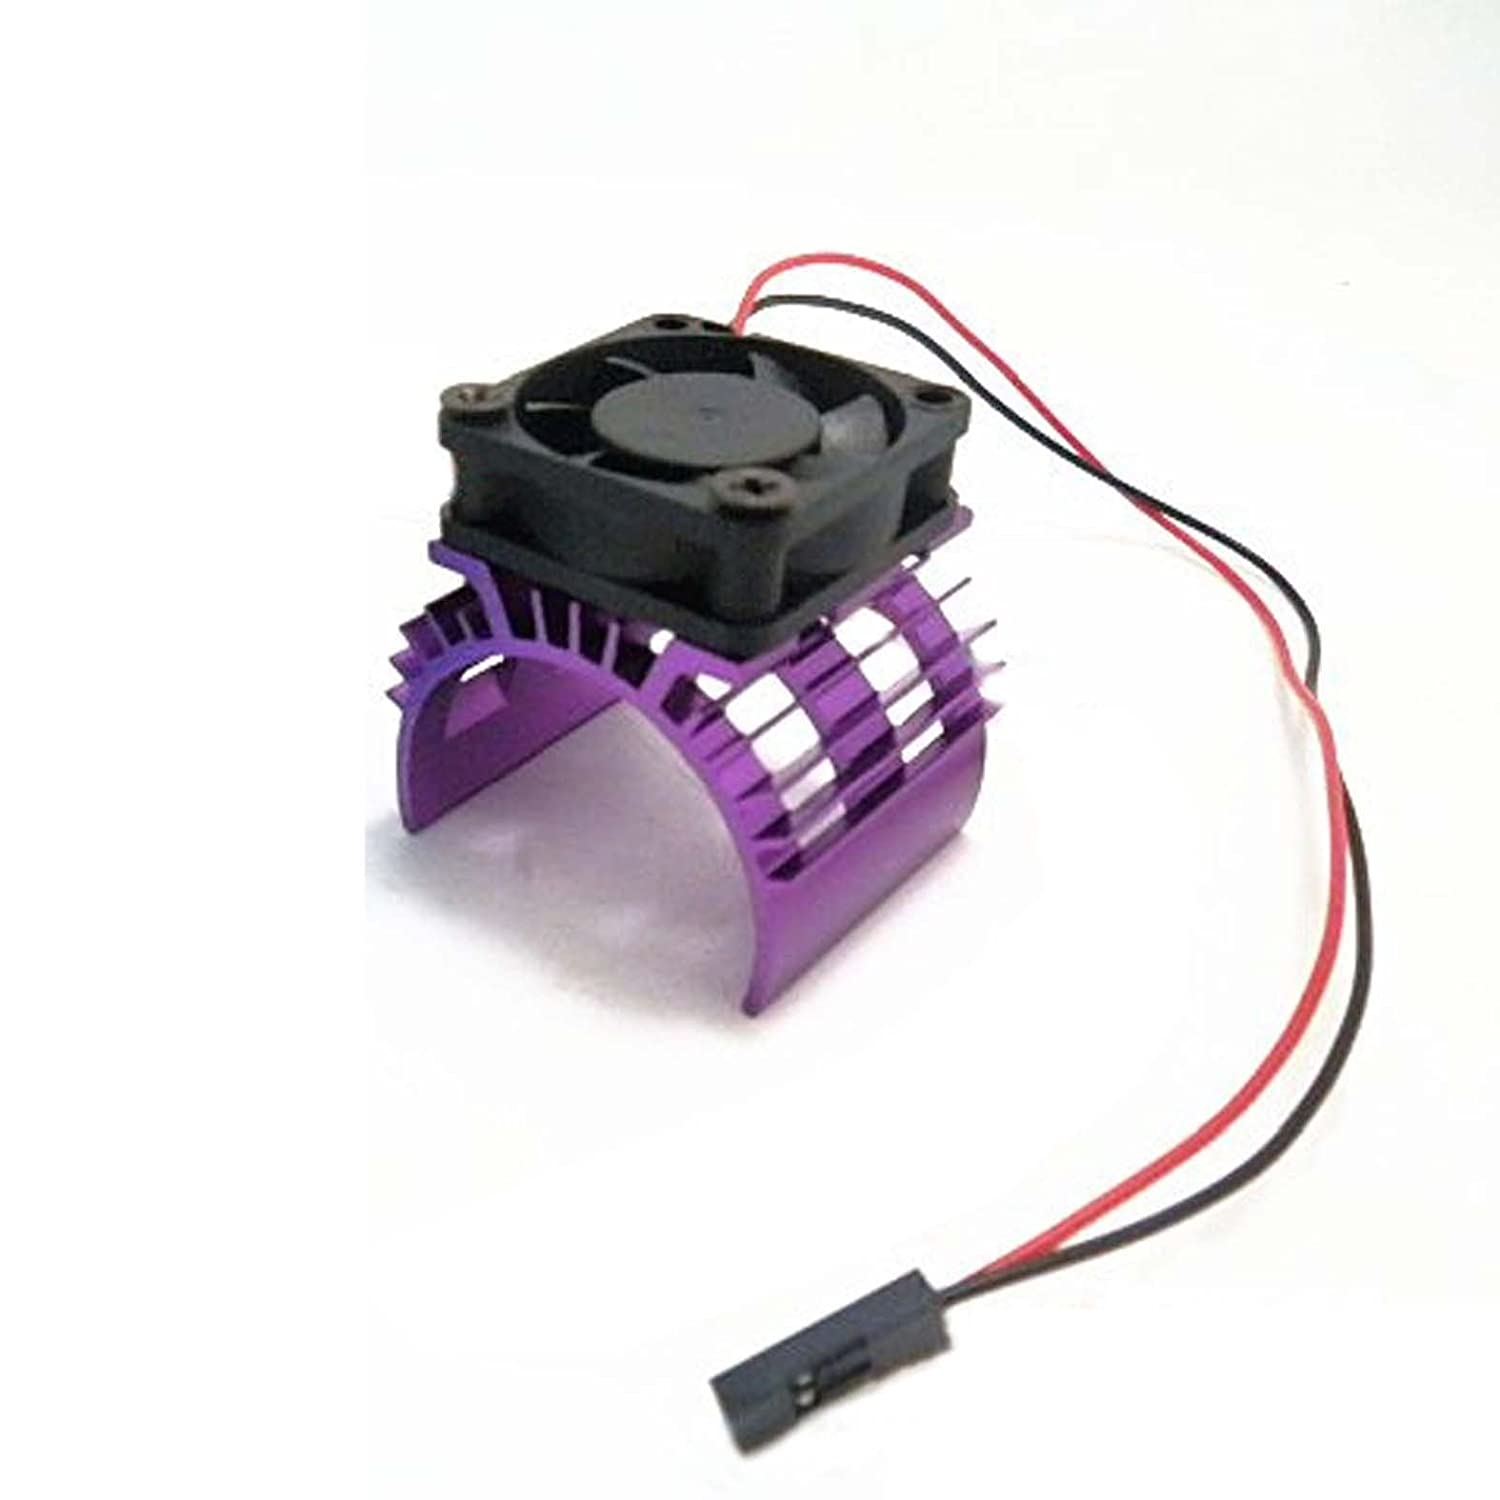 Hobbypower Alloy Heatsink with 5v Cooling Fan for 1/10 RC Model Car 540 550 3650 Size Motor(Purple)